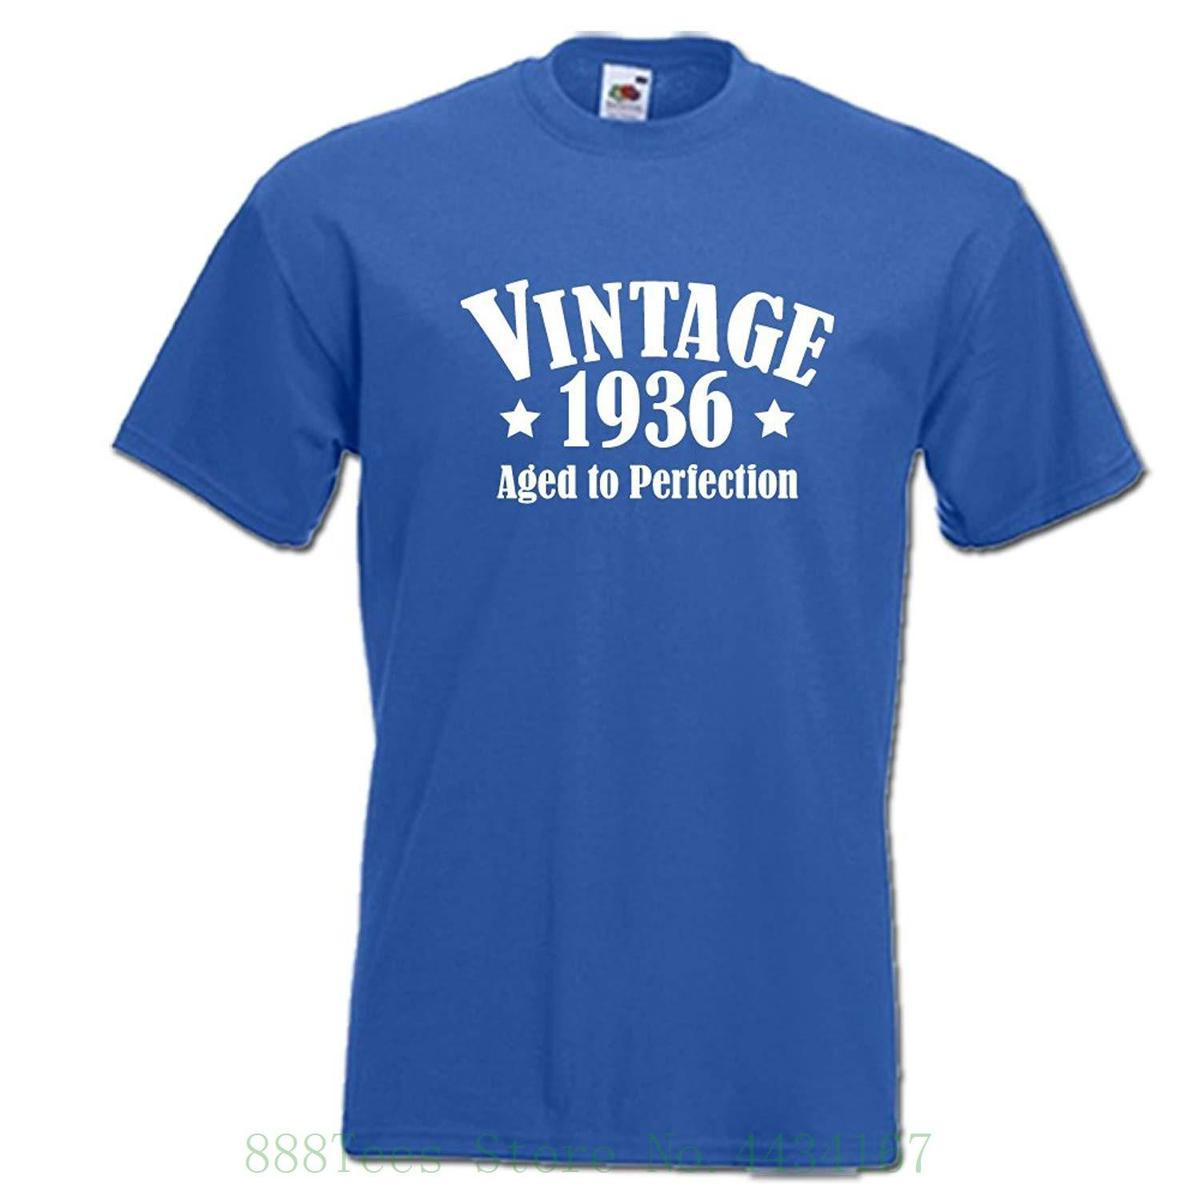 Vintage 1936 Aged To Perfection 80th Birthday 80 Years Classic Funny Mens Womens Unisex T Shirt Print Men Buy Shirts Online From Jie11